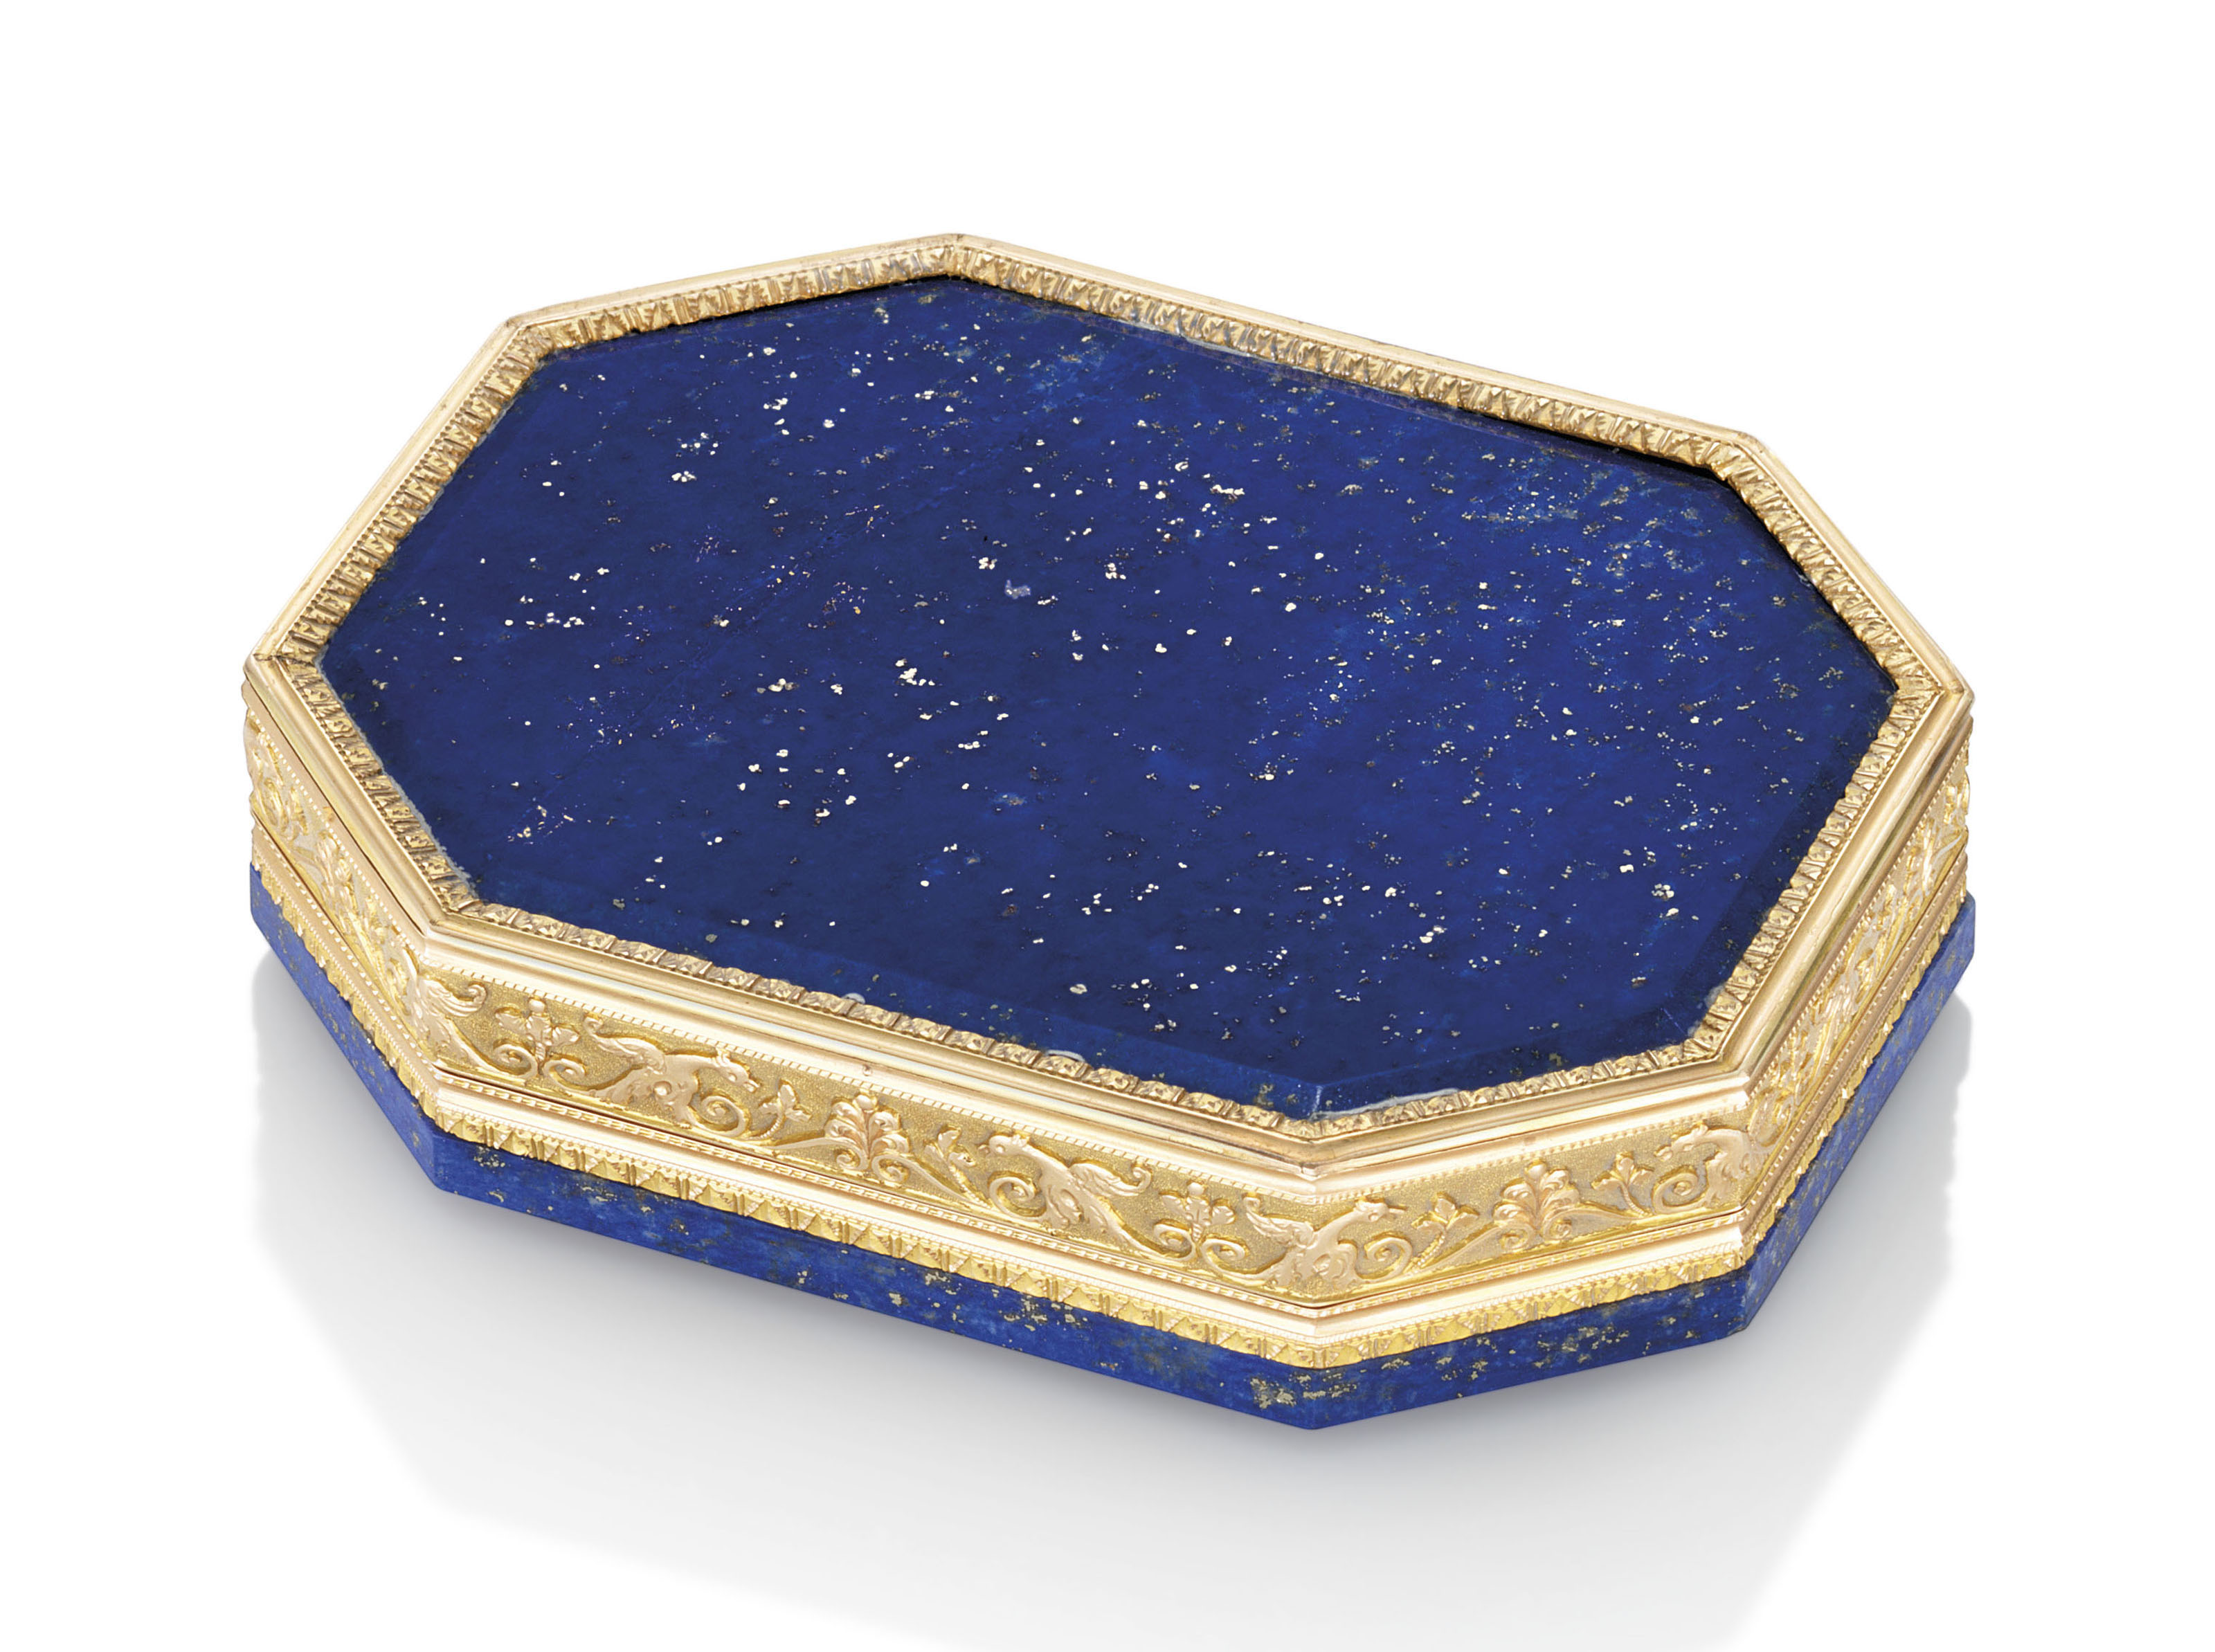 AN AUSTRIAN GOLD-MOUNTED HARDSTONE SNUFF-BOX